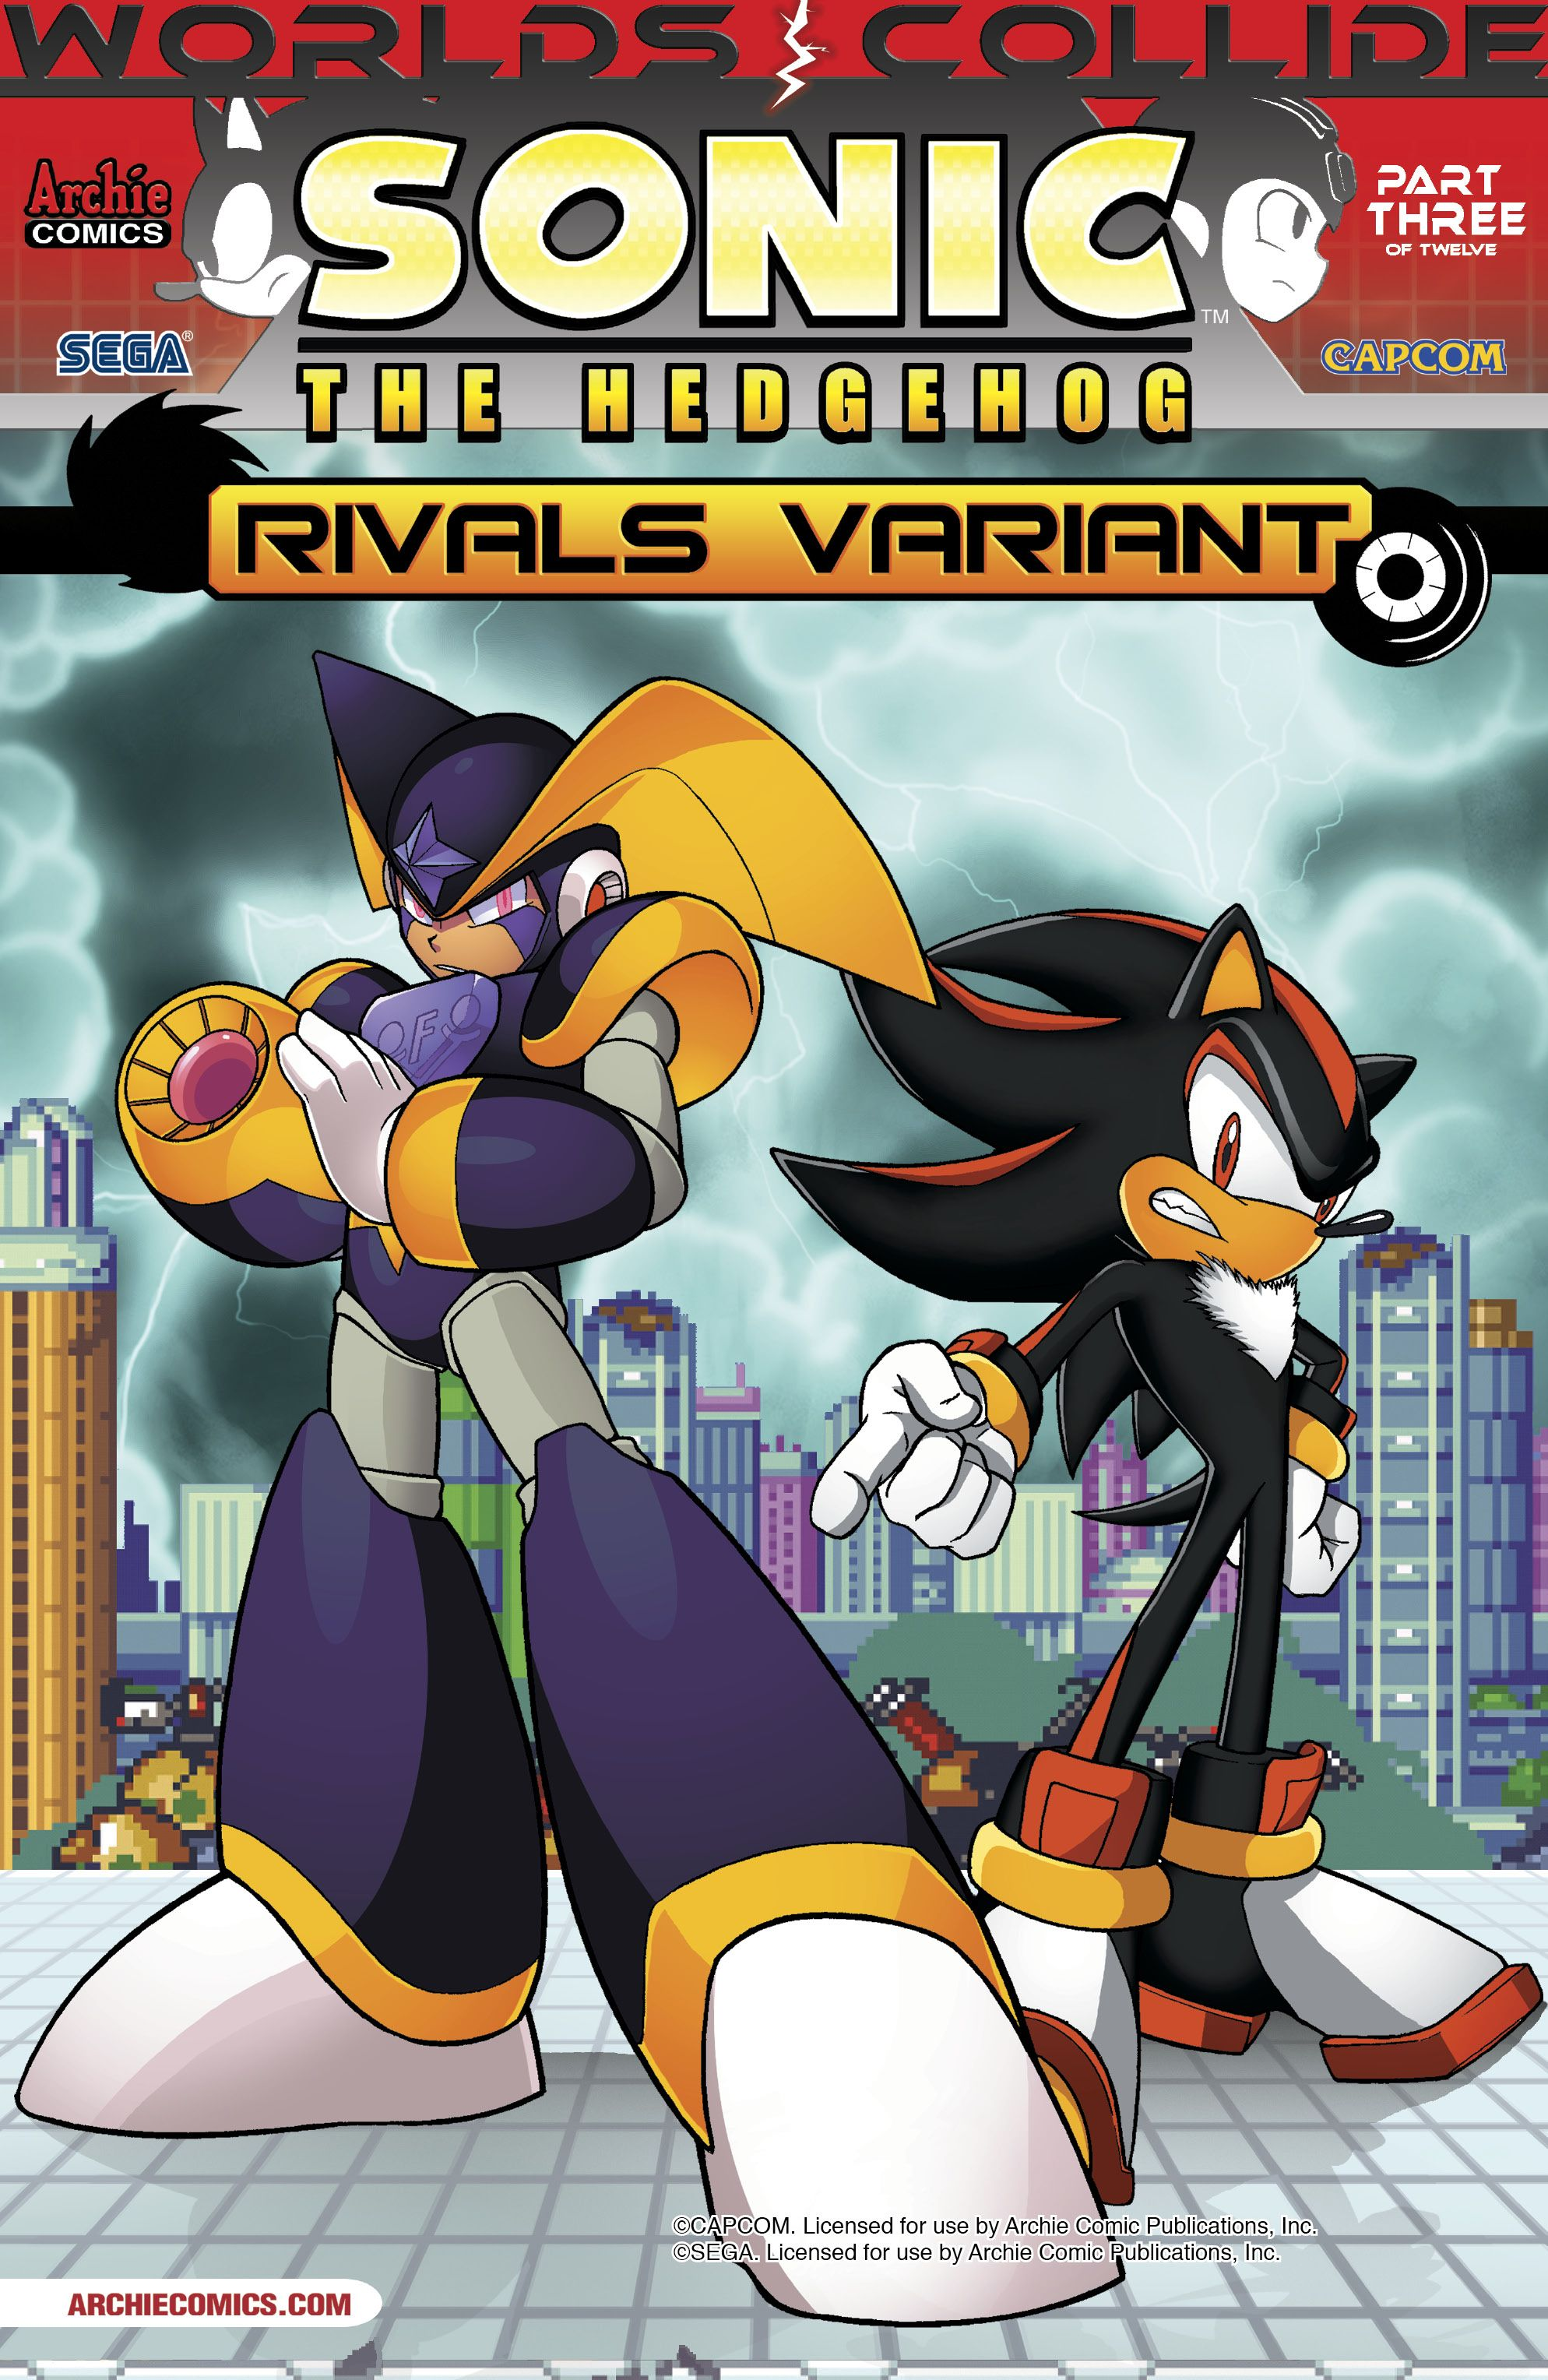 Archie sonic the hedgehog issue 248 pinterest archie hedgehogs archie sonic the hedgehog issue 248 mobius encyclopaedia wikia thecheapjerseys Gallery